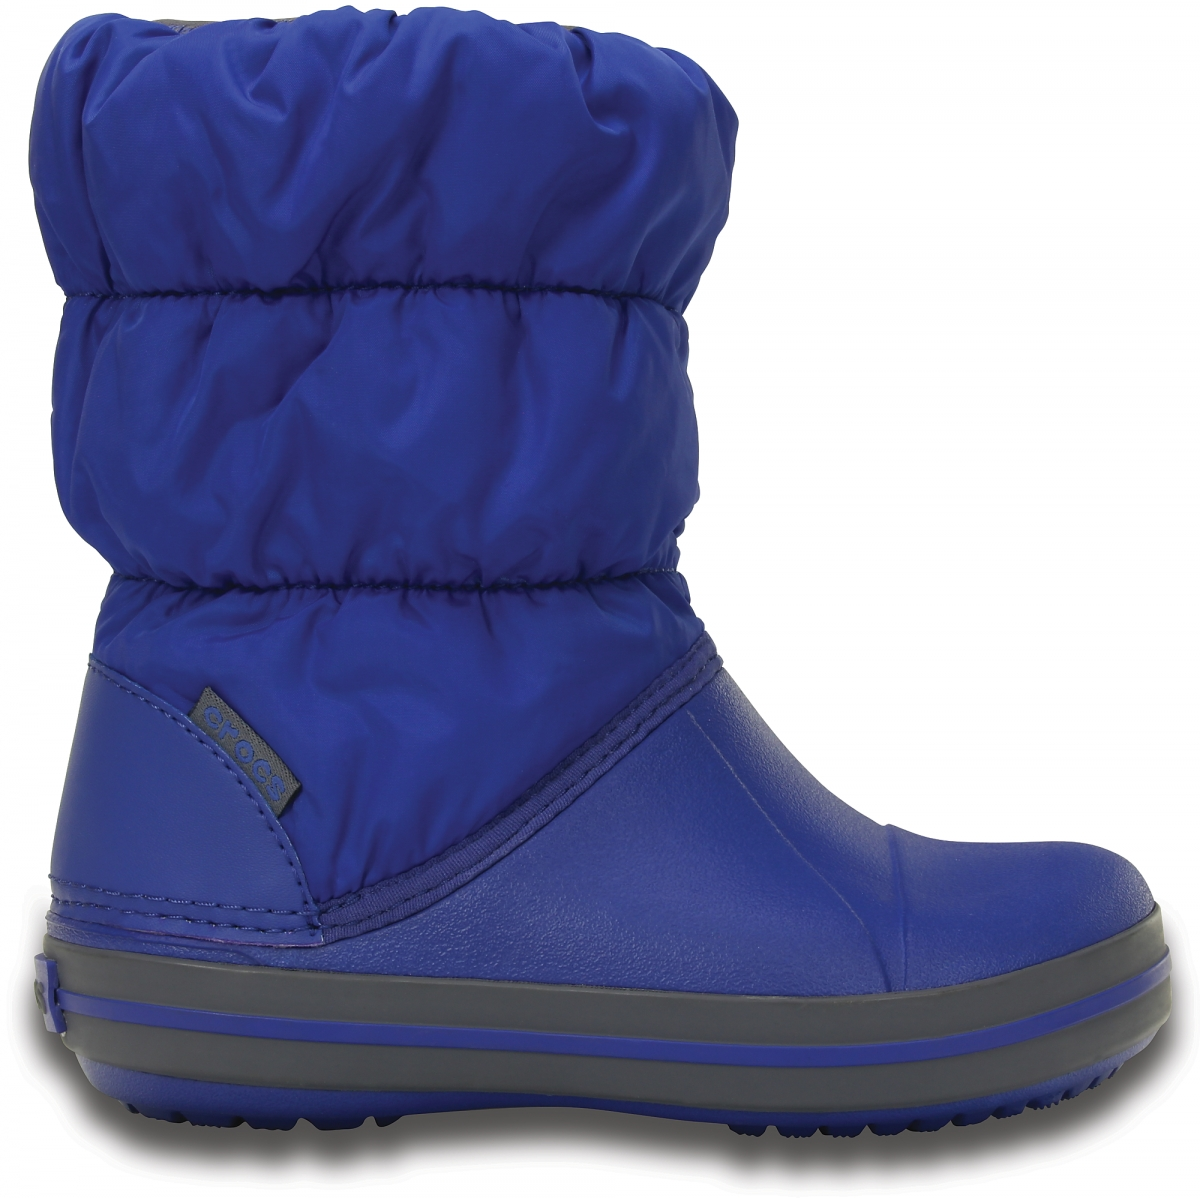 Crocs Winter Puff Boot Kids - Cerulean Blue/Light Grey, J1 (32-33)